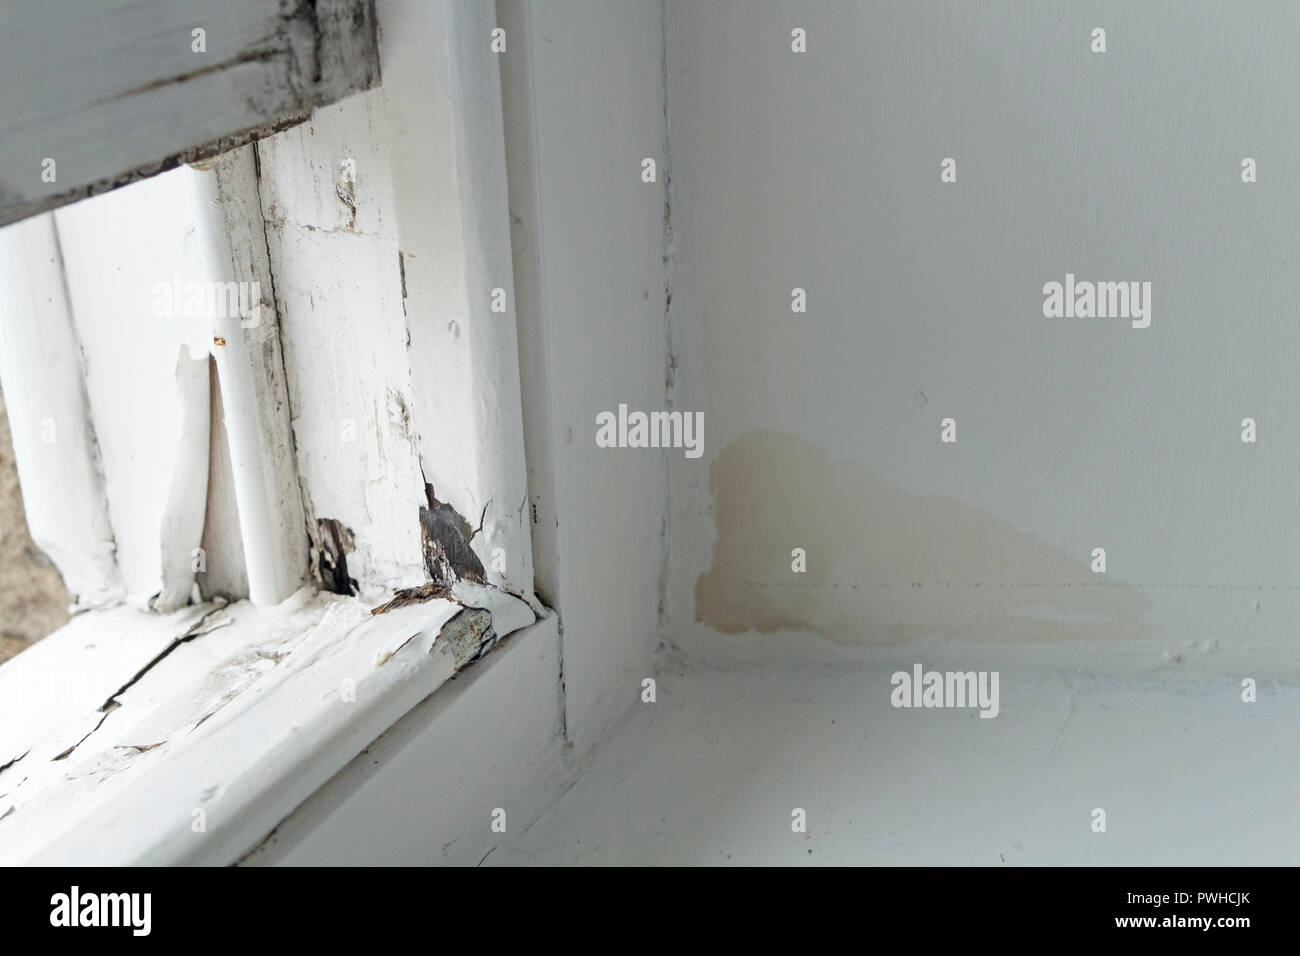 A Rotten Sash Window Frame with Damp Patch Caused by Water Ingress in a Rented Property, UK. - Stock Image